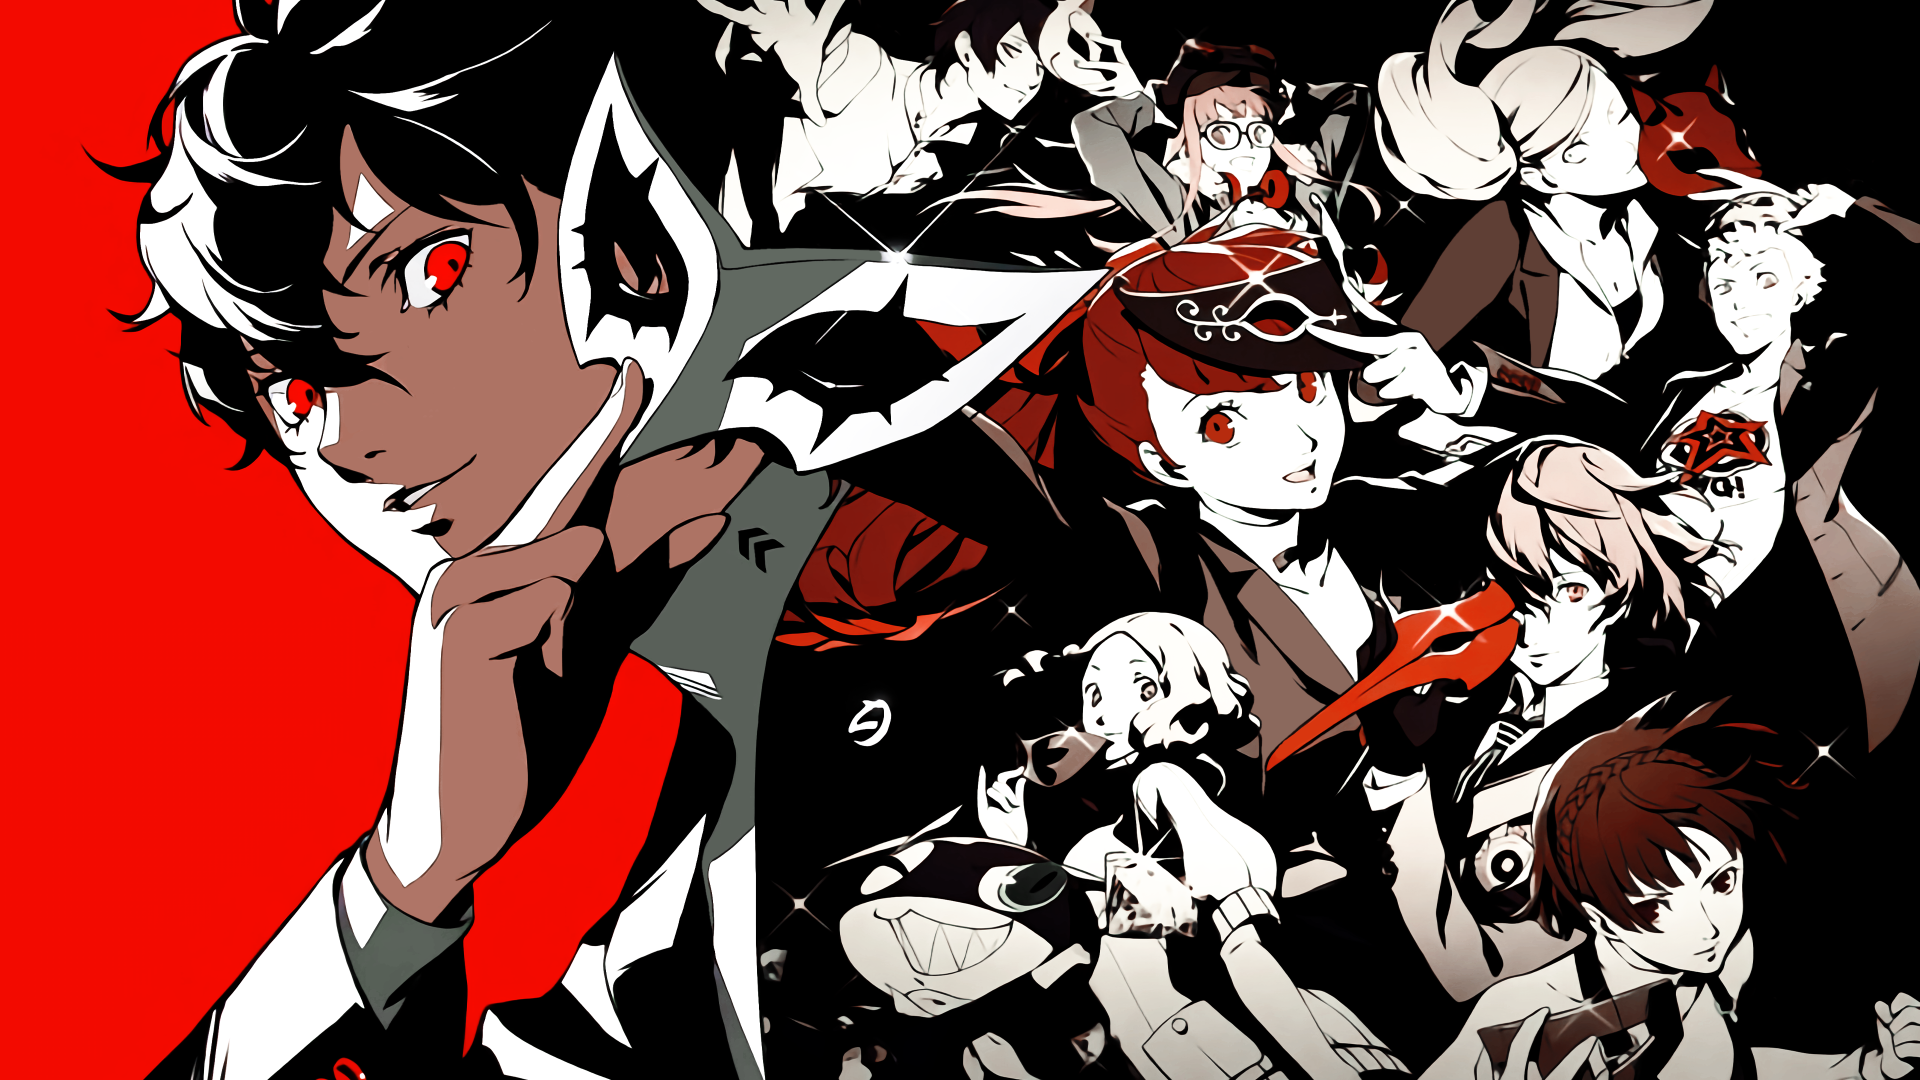 7 Persona 5 Royal Hd Wallpapers Background Images Wallpaper Abyss